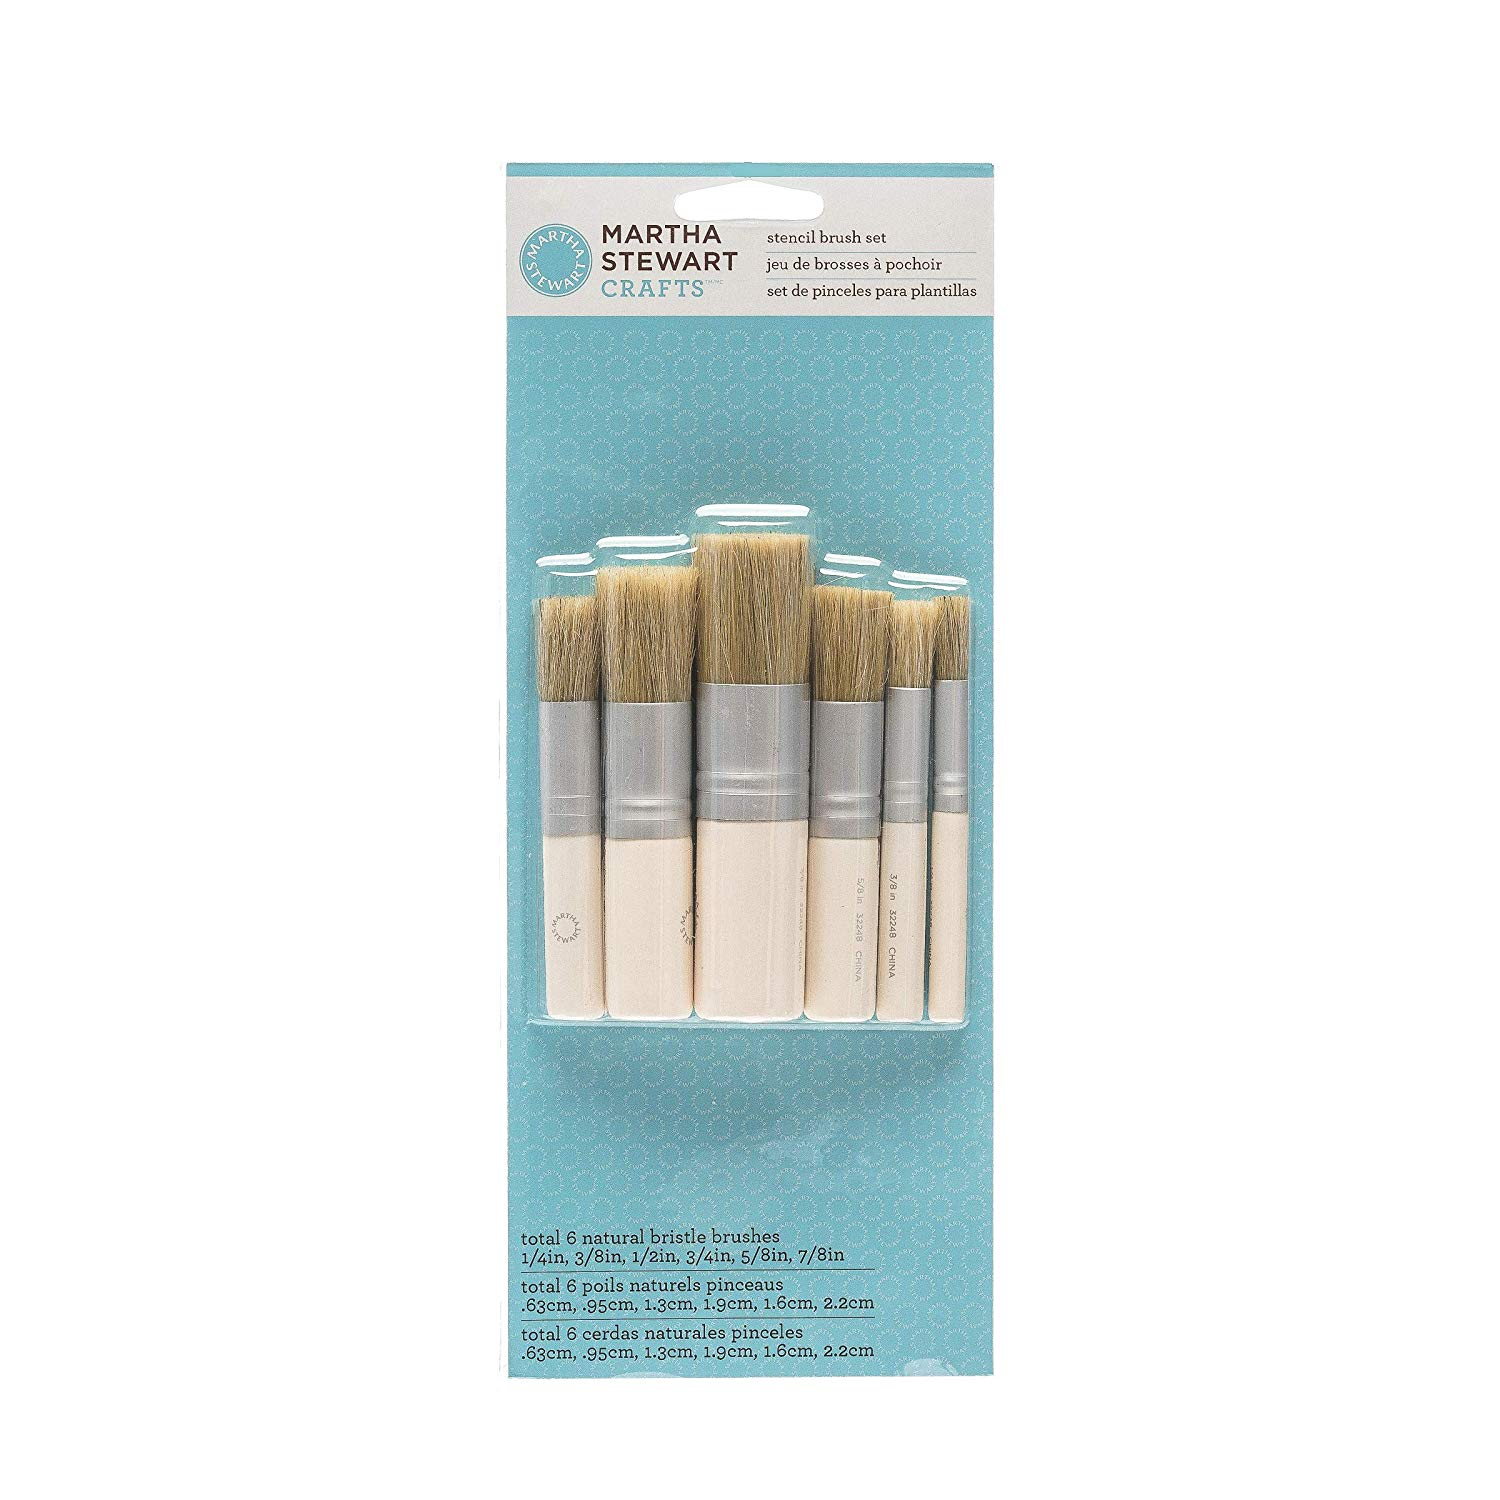 Martha Stewart Crafts Stencil Brush Set: 6 Pieces – 10033377